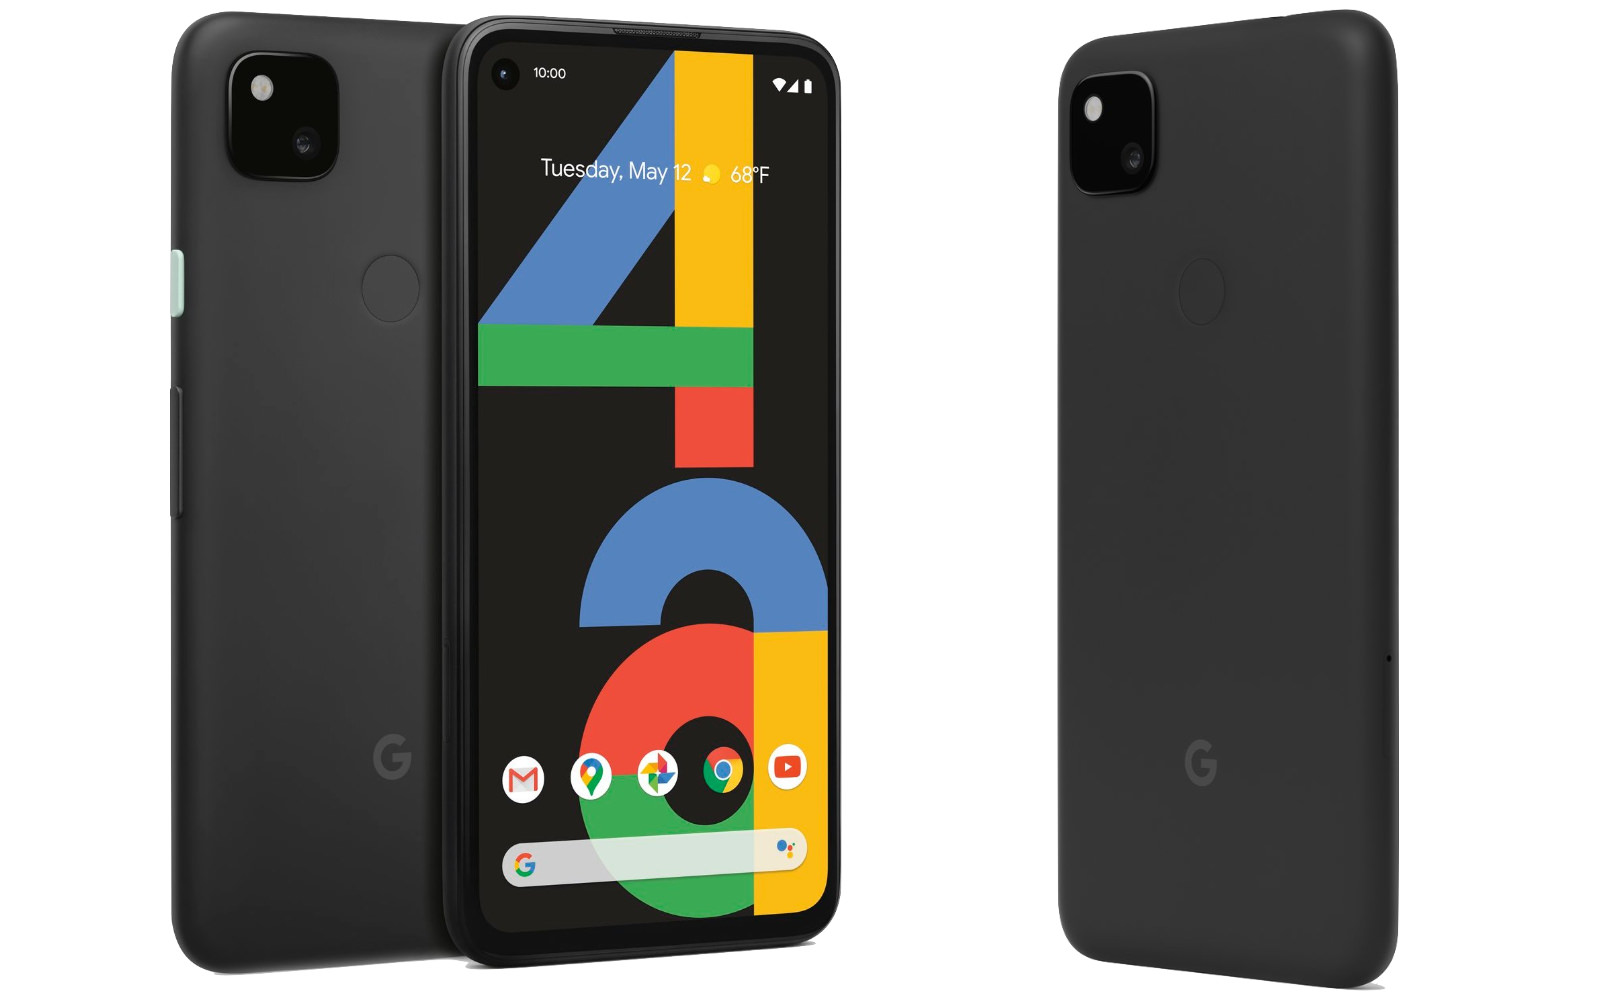 Pixel 4a rendering images